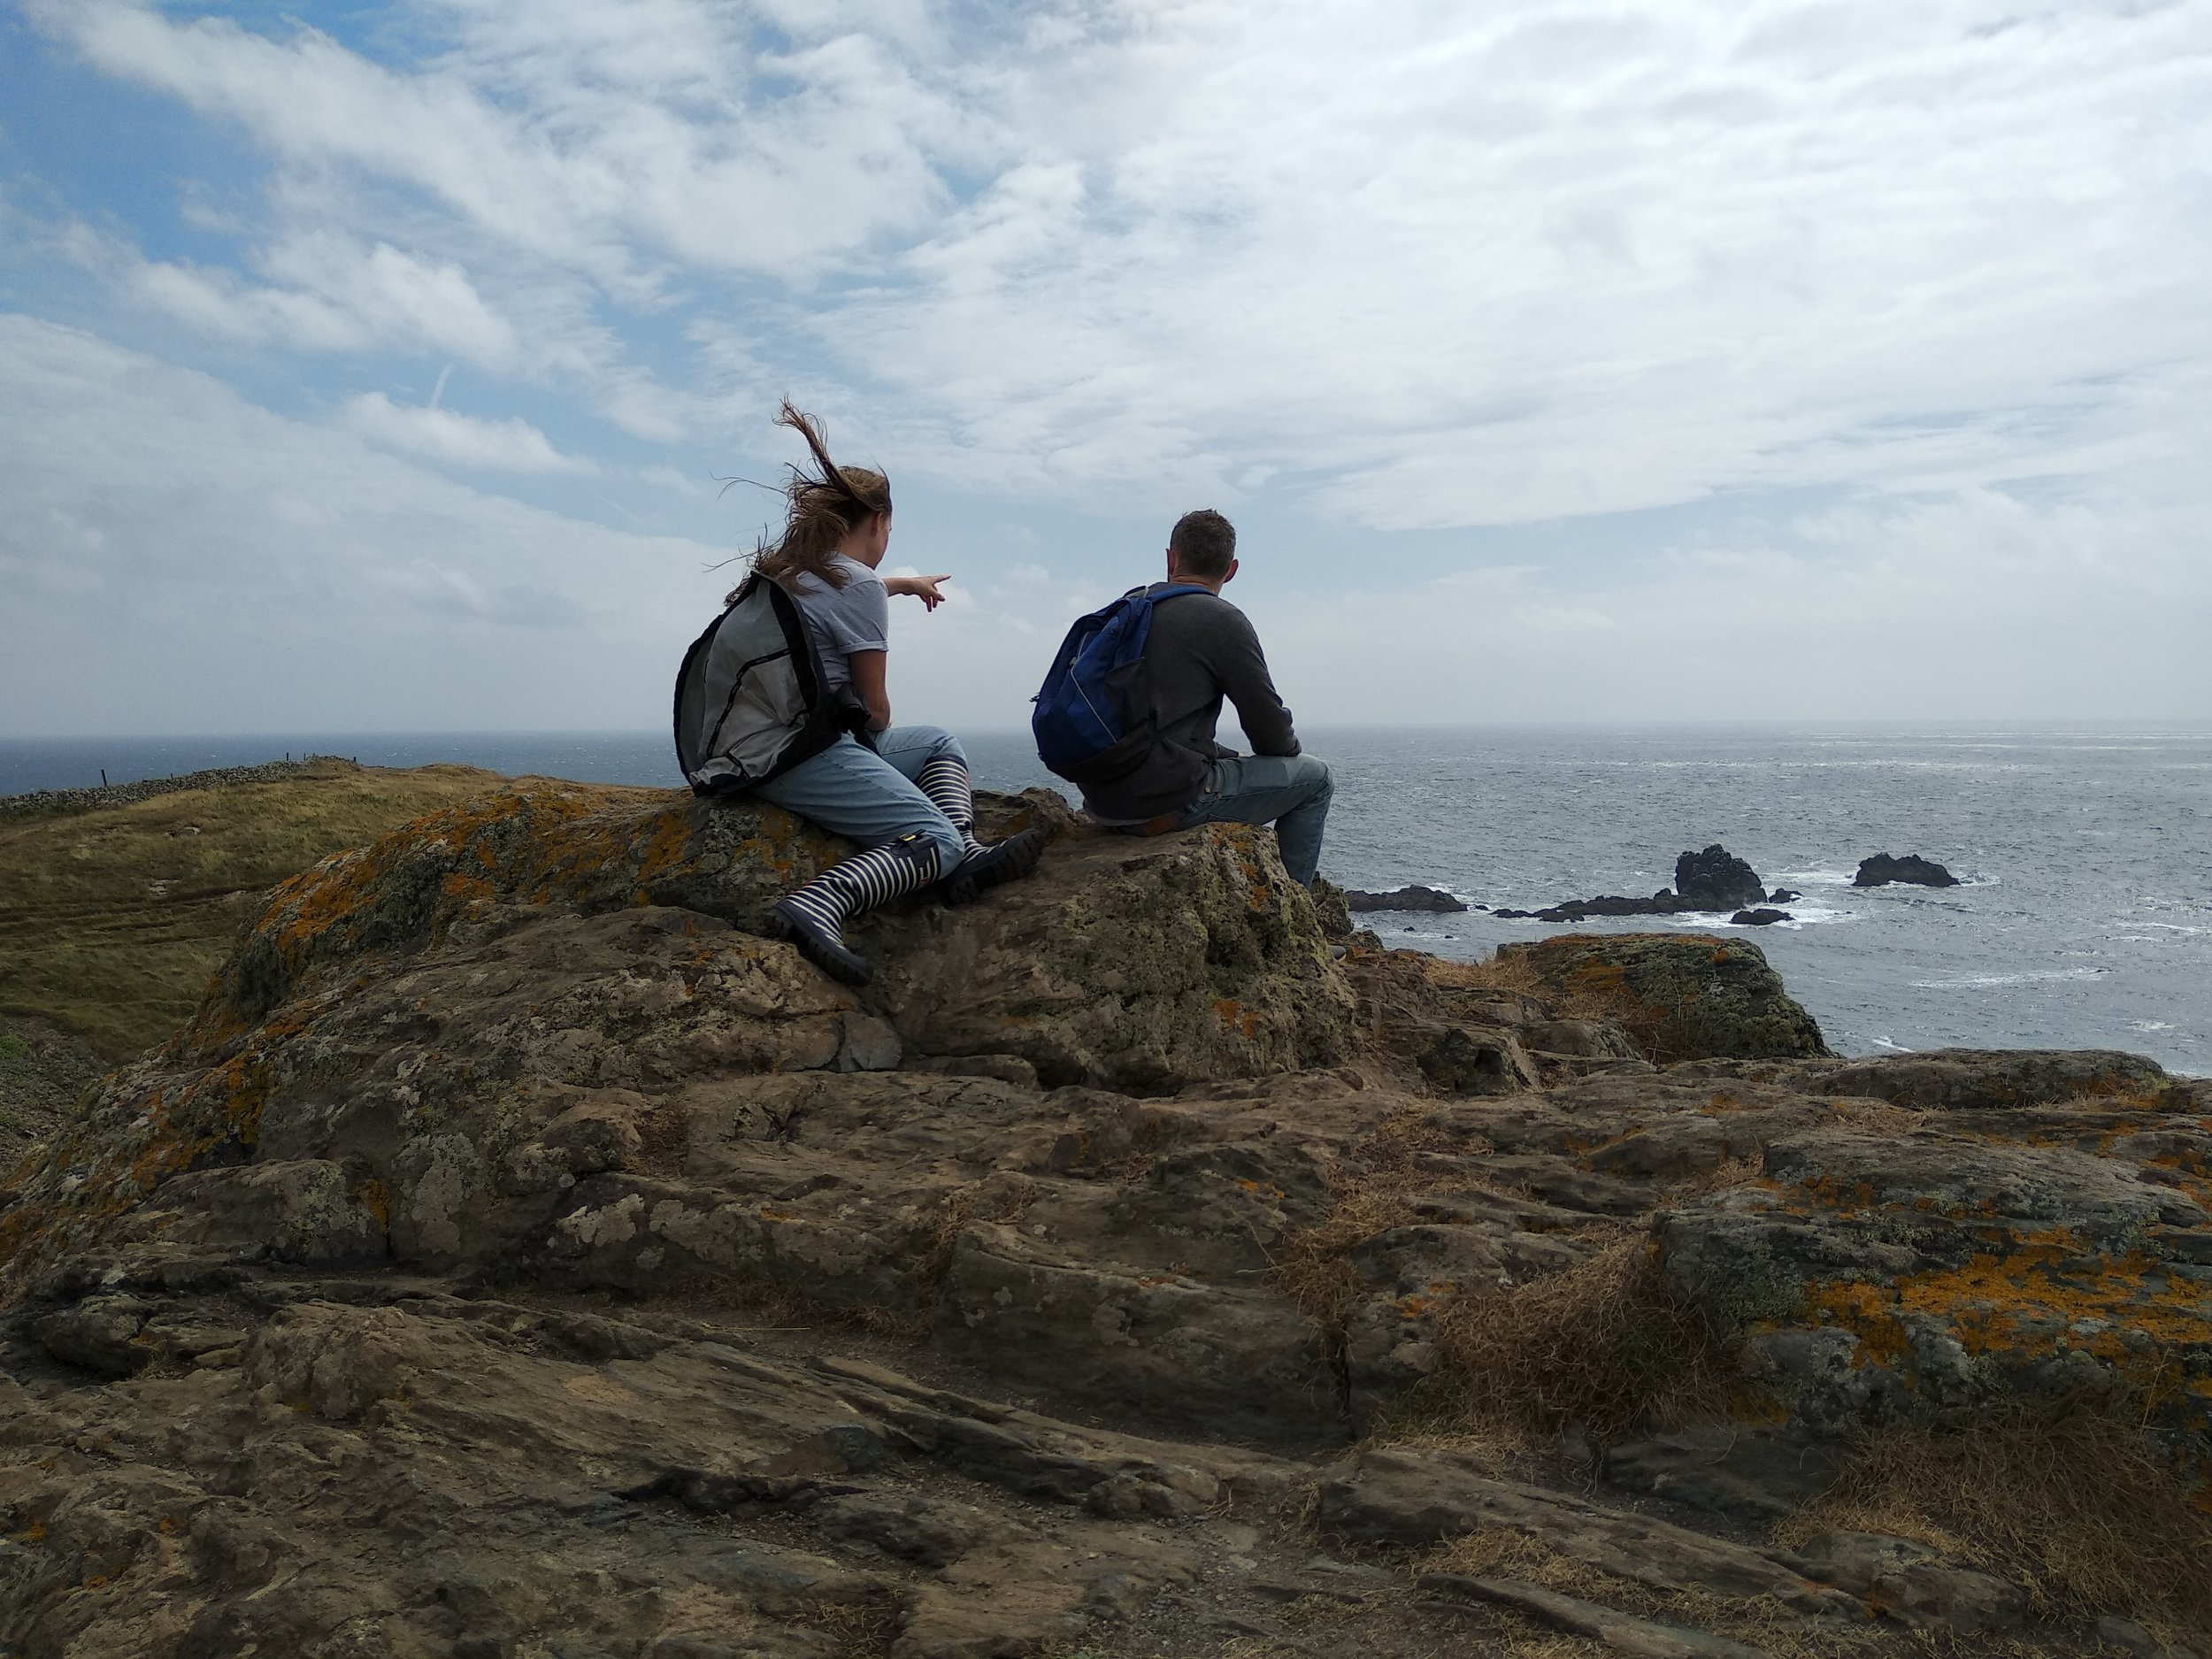 Our good friends Katie and Simon, walking in and around Lizard Point.